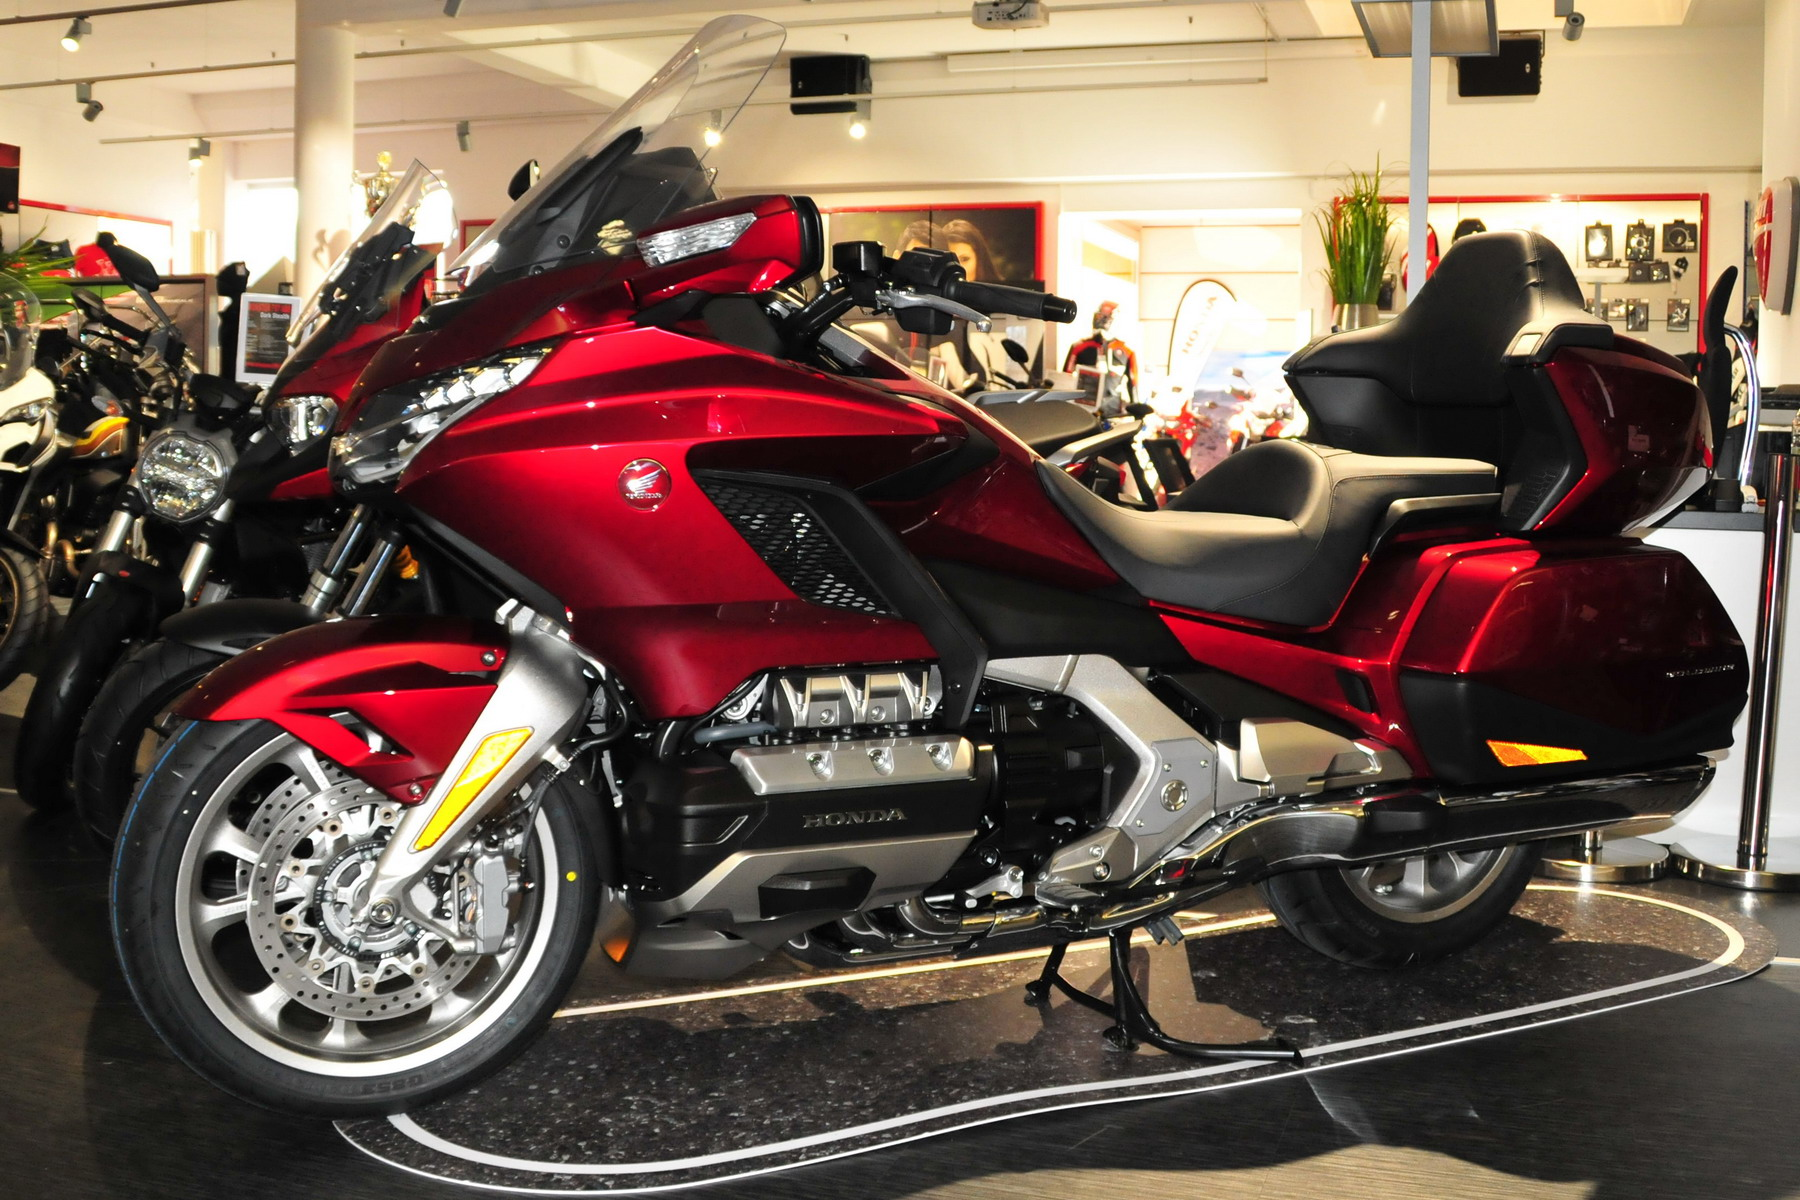 Honda Goldwing Trike | 2020 New Car Reviews Models on gl1800 trailer wiring, gl1800 wiring connector, gl1800 audio wiring diagram, 1983 honda aspencade schematic, gl1800 fuses, gl1800 turn signals, gl1100 radio schematic, goldwing electrical schematic, gl1800 engine,